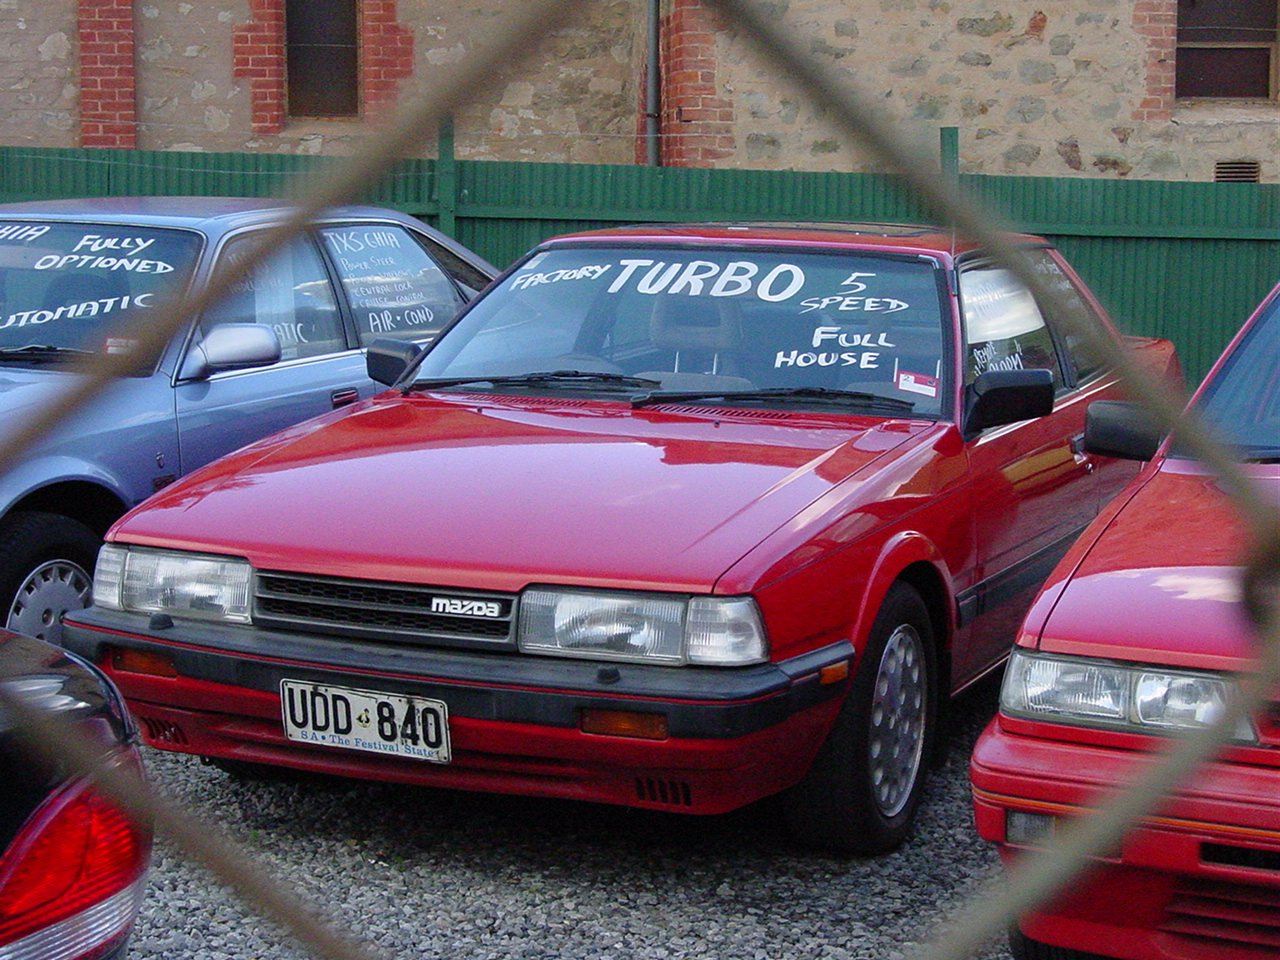 file:1986-1987 mazda 626 (gc series 2) super deluxe turbo coupe